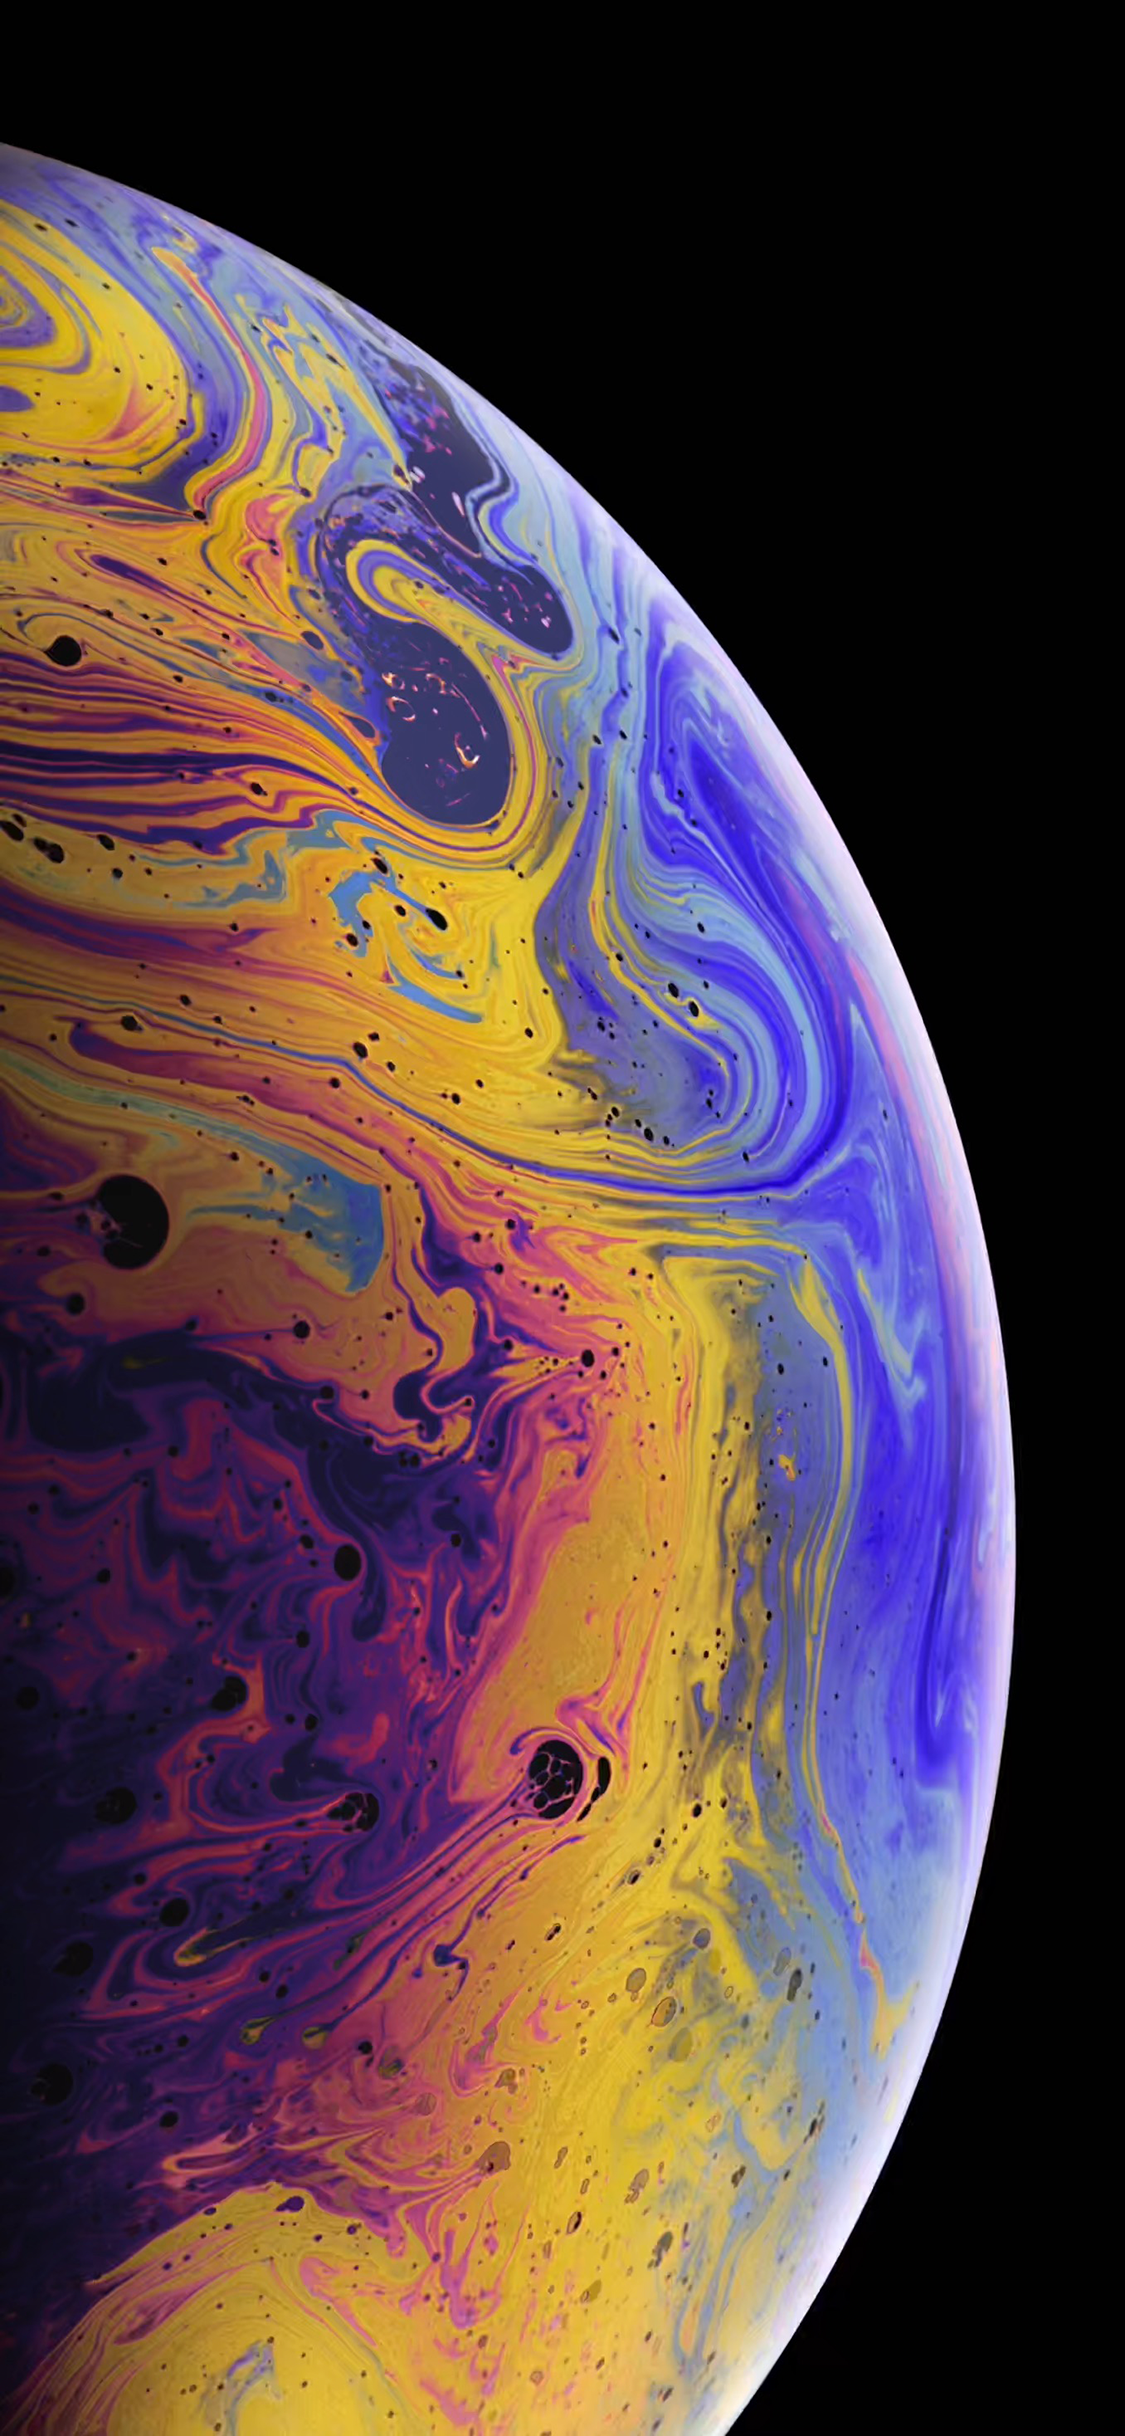 IOS 12 Wallpapers Wallpaper For IPhone X, 8, 7, 6